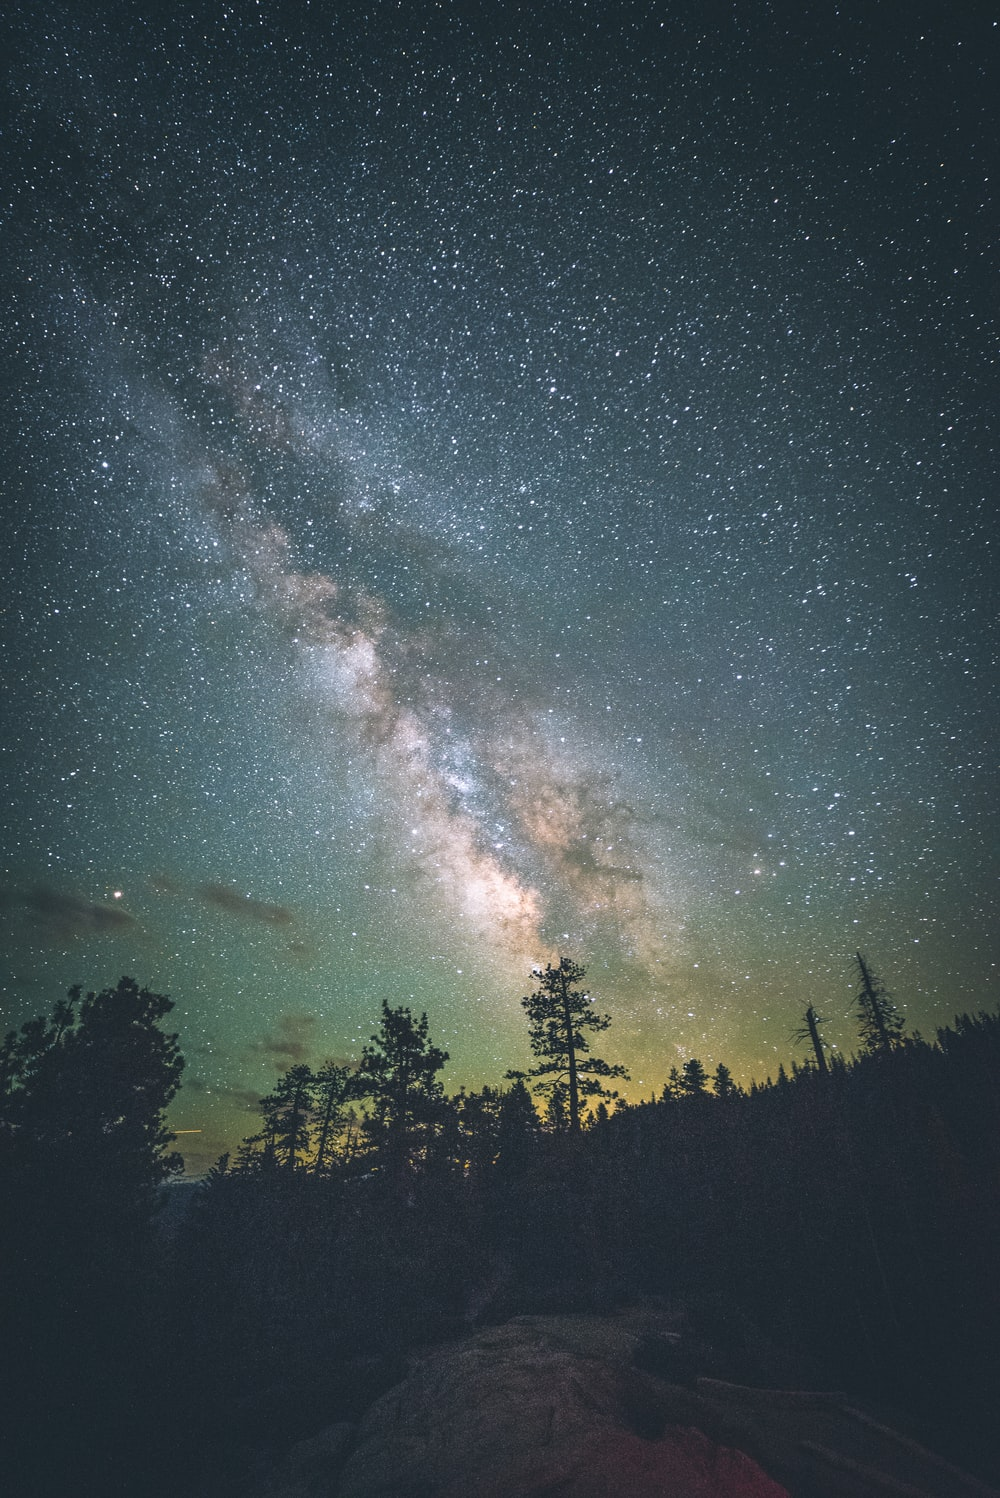 silhouettes of trees under starry sky